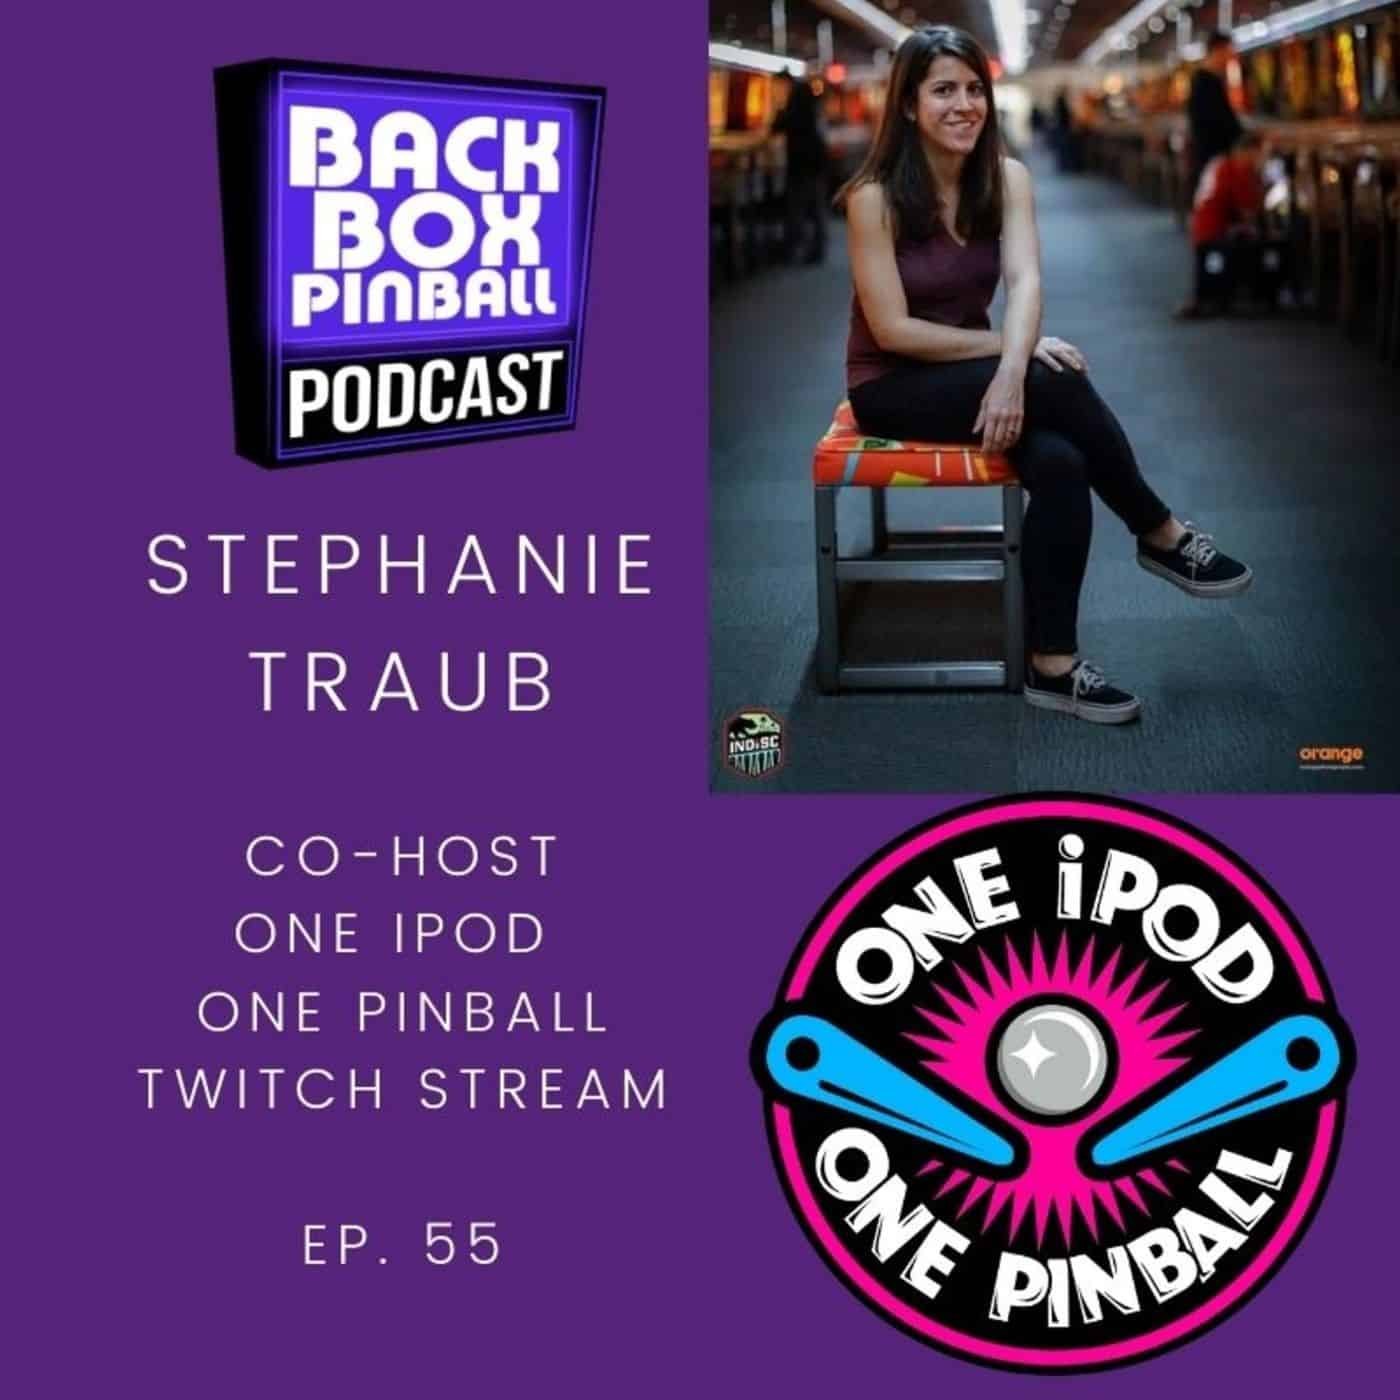 Backbox Pinball Podcast: Stephanie Traub